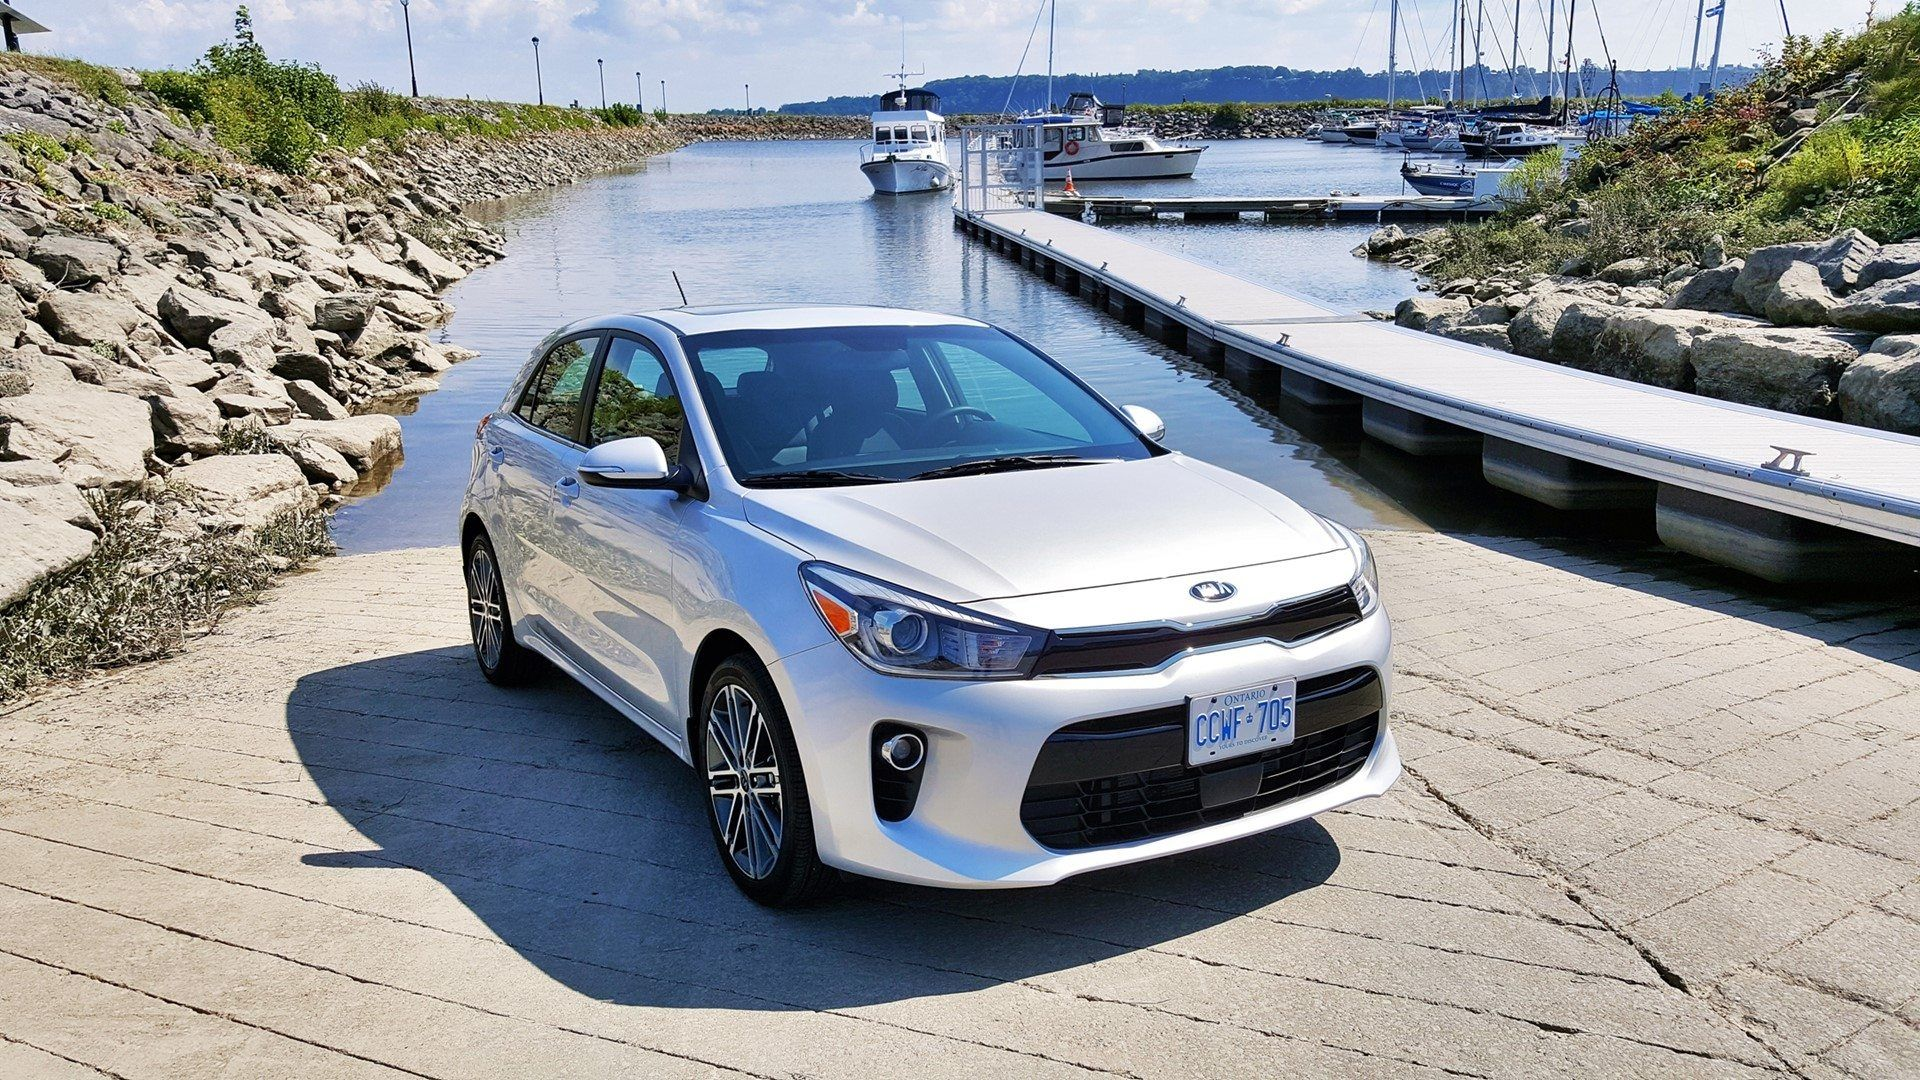 2018 Kia Rio 5 Door First Drive Review Mpg Towing Capacity And